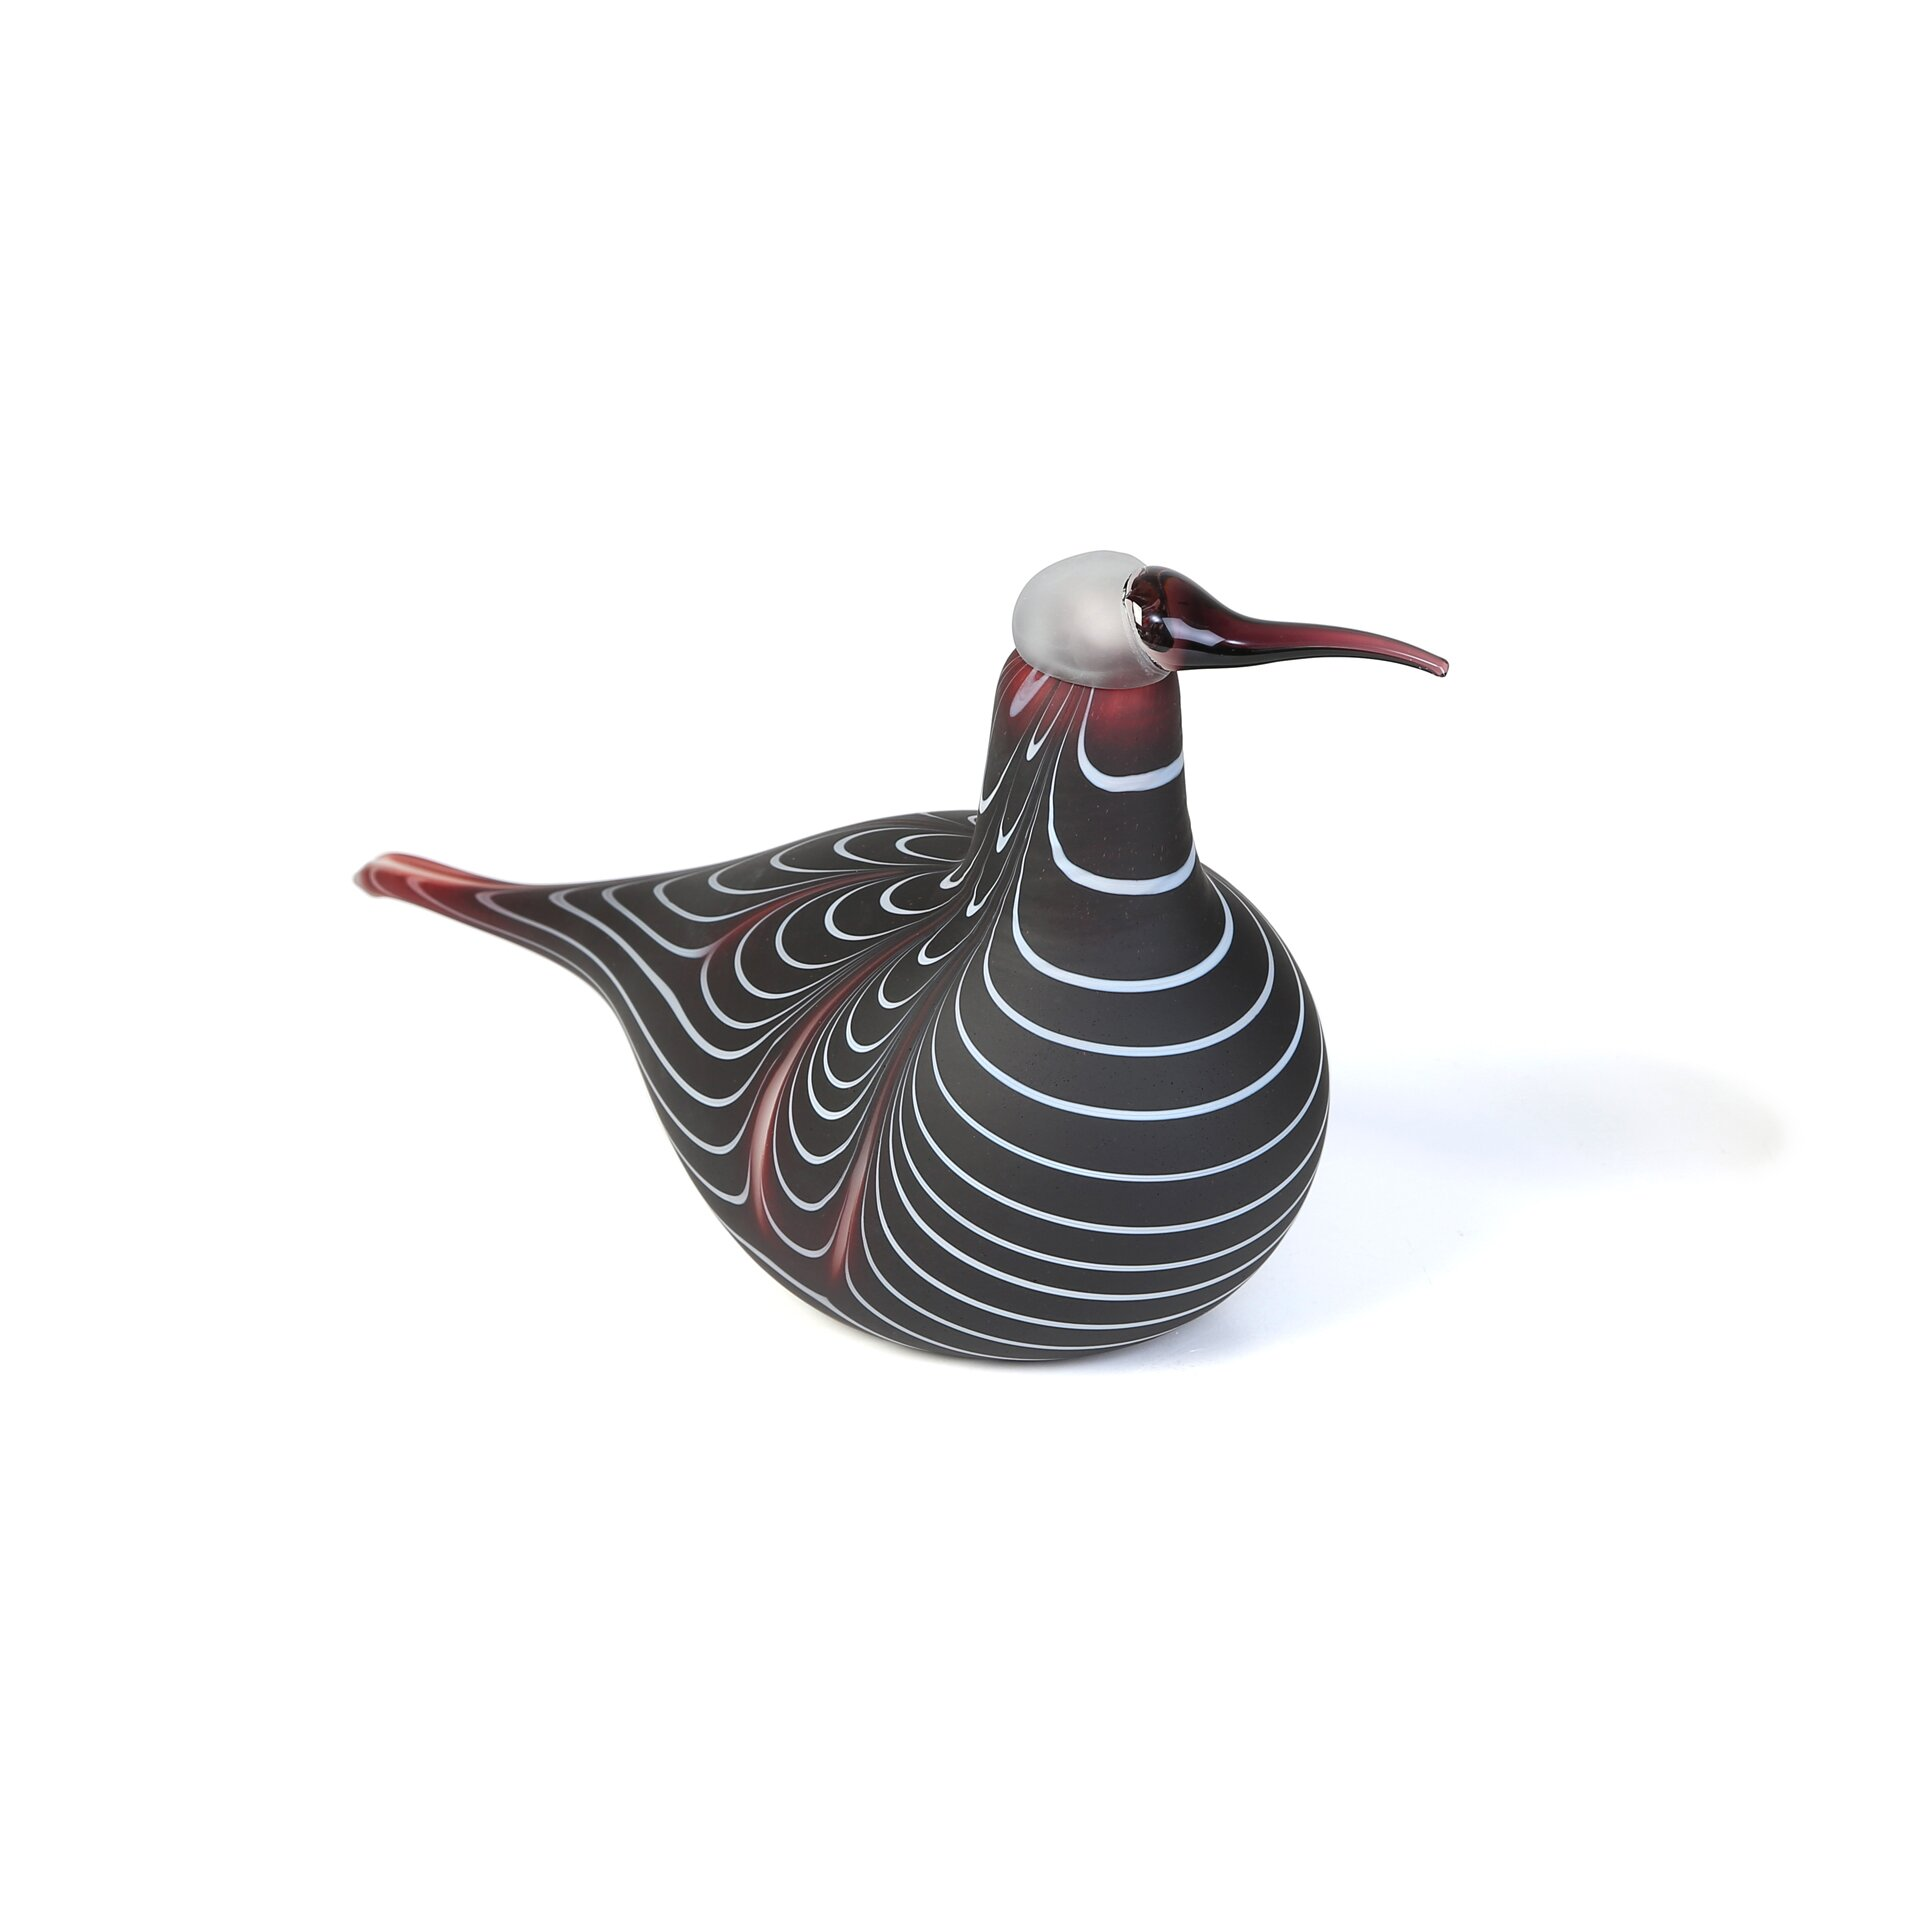 Birds by Toikka Curlew Figurine & Reviews | AllModern - iittala Birds by Toikka Curlew Figurine